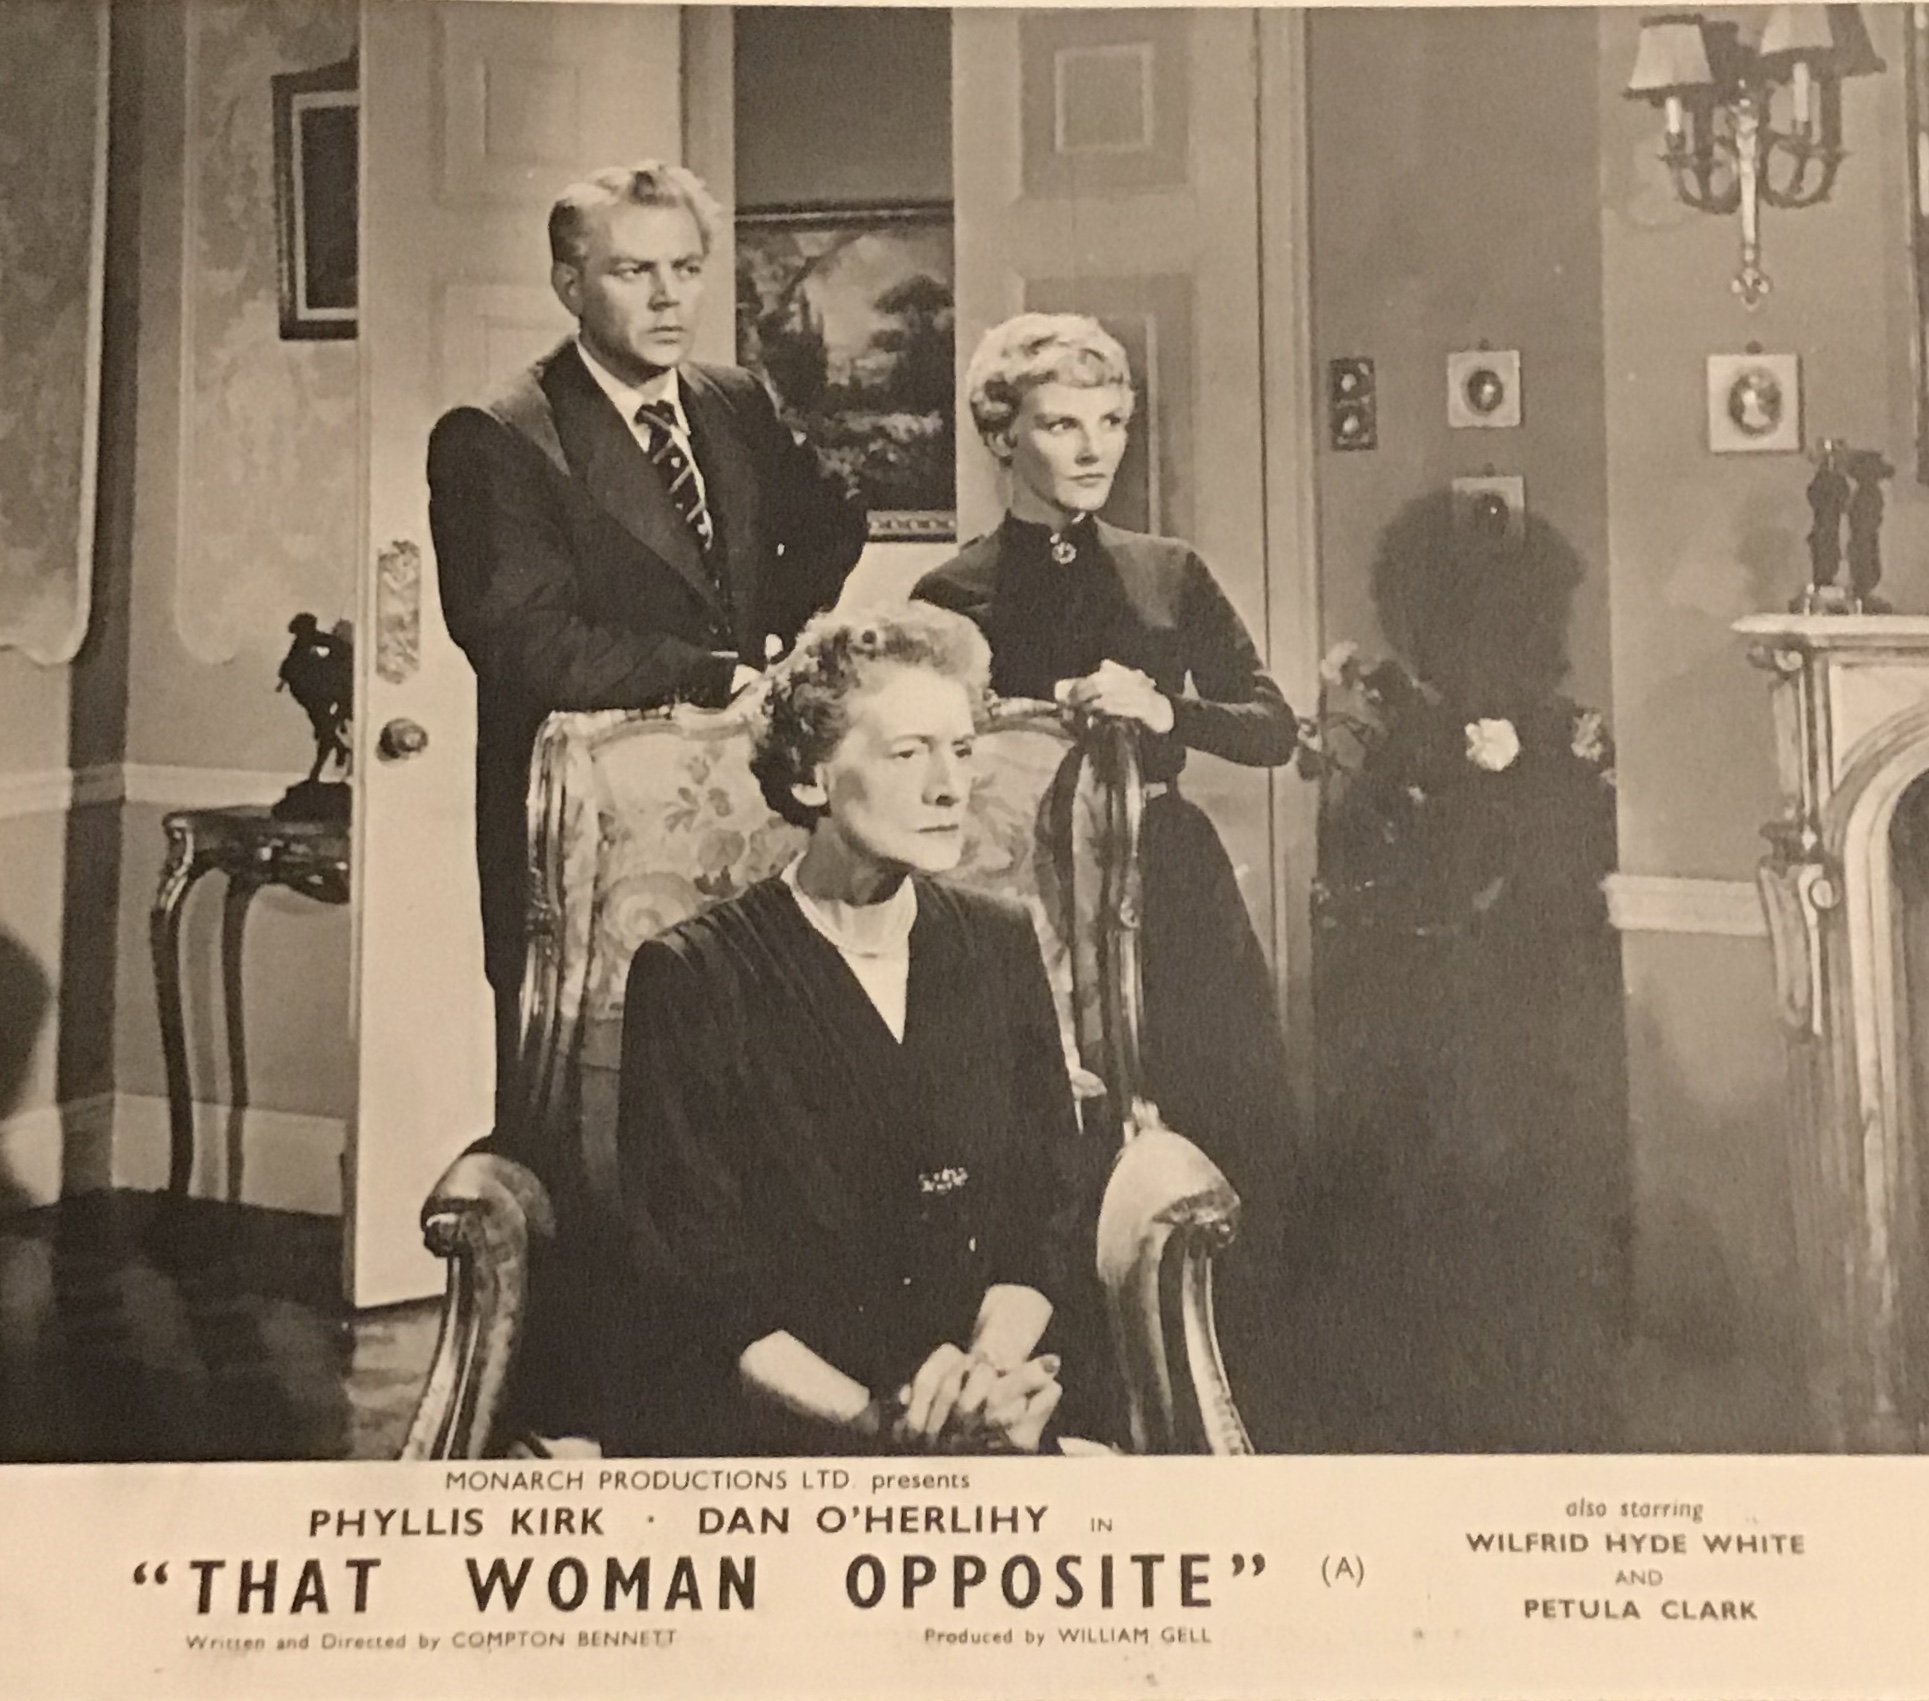 Petula Clark, Dan O'Herlihy, and Margaret Withers in That Woman Opposite (1957)